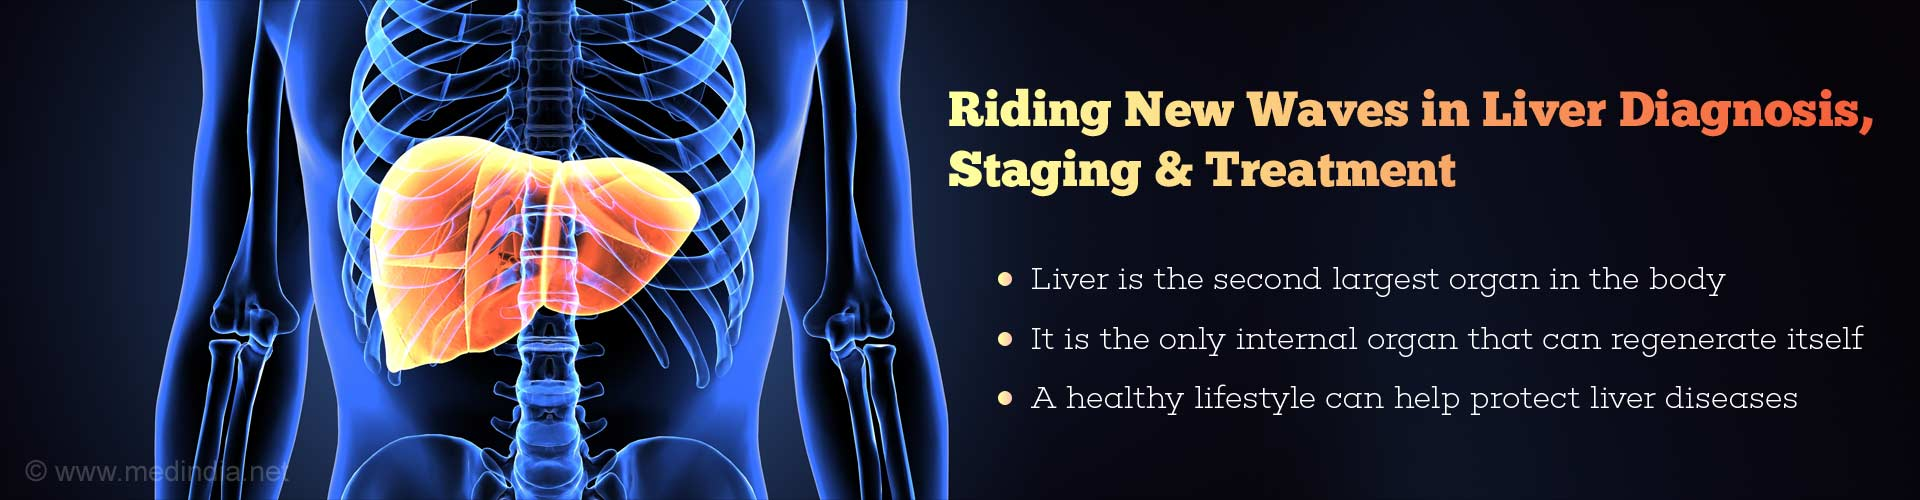 Riding new waves in liver diagnosis, staging & treatment - liver is the second largest organ in the body - it is the only internal organ that can regenerate itself - a healthy lifestyle can help protect liver diseases